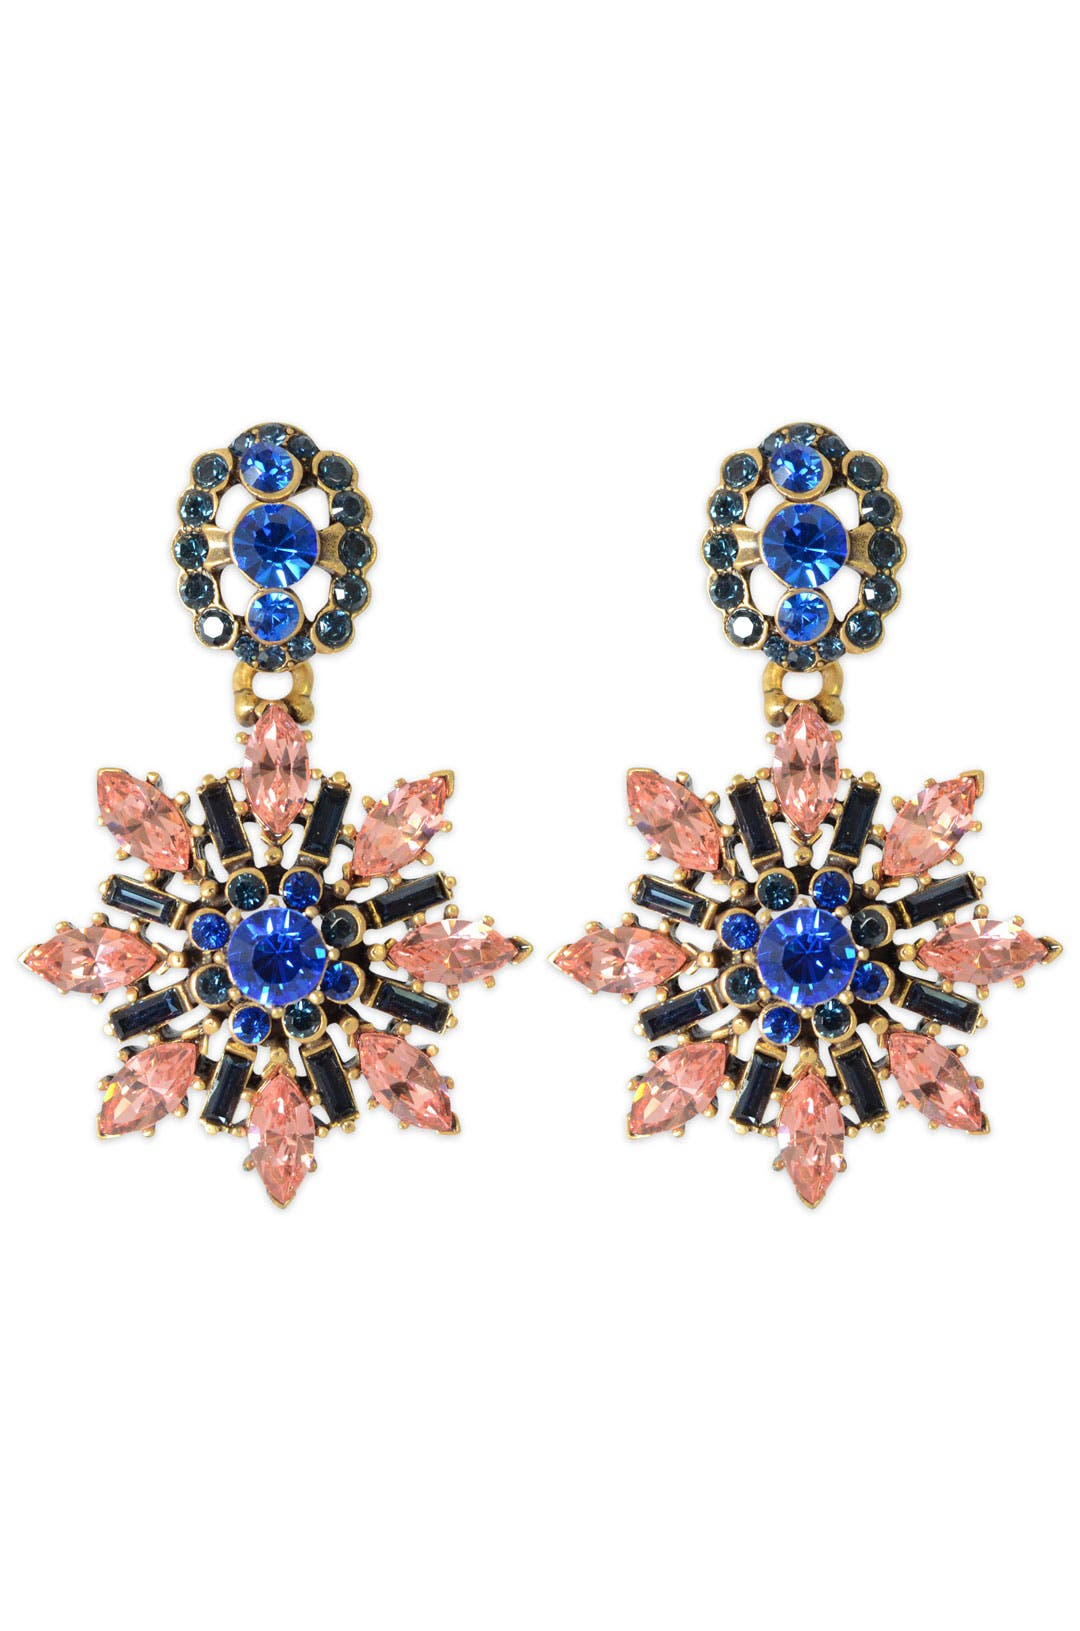 Prism Etoile Earrings by Oscar de la Renta